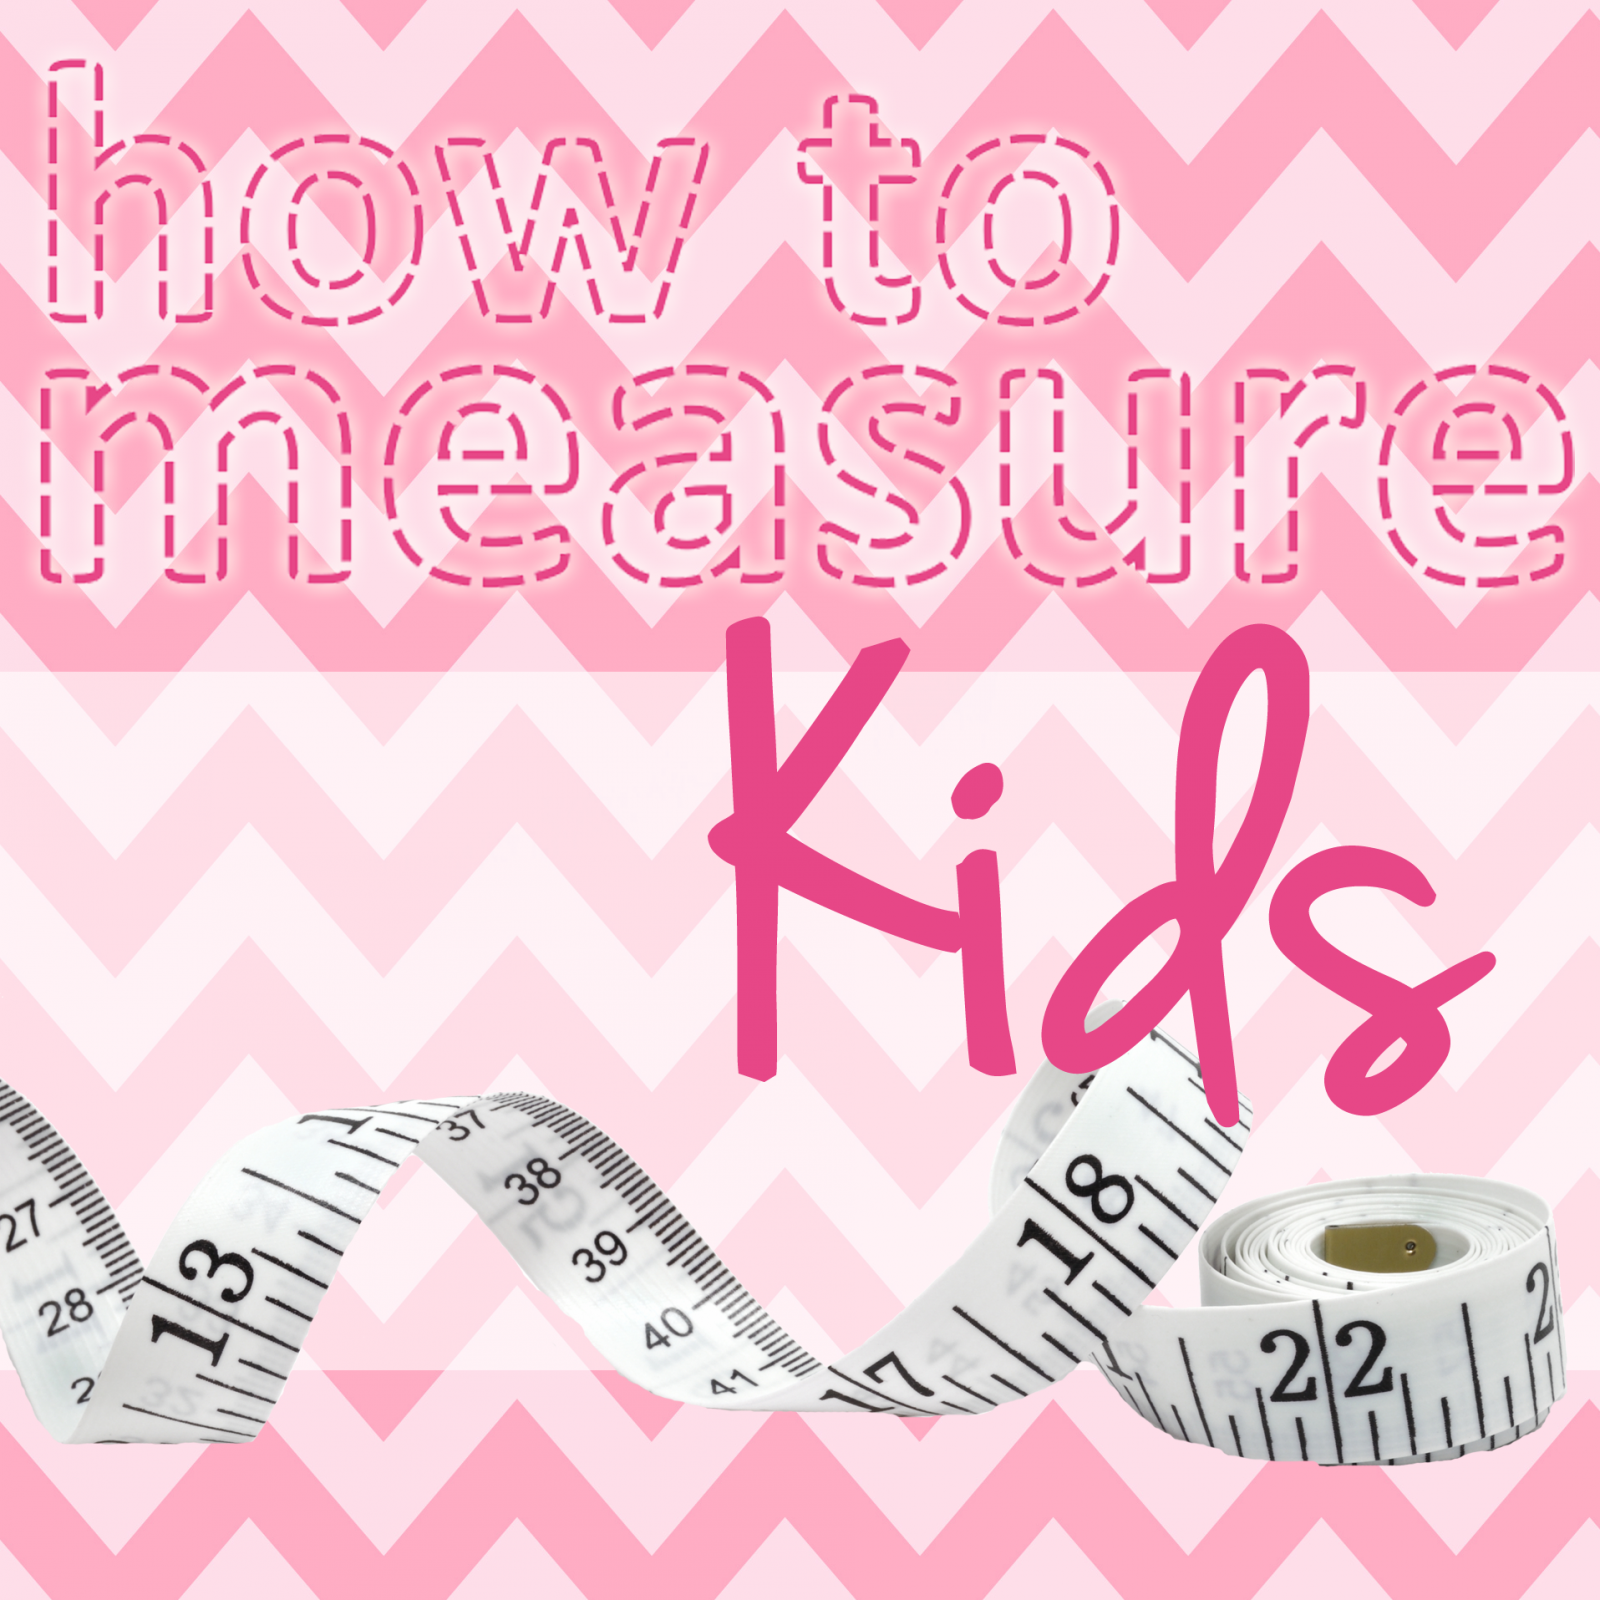 Stylo247_How_to_measure_kids